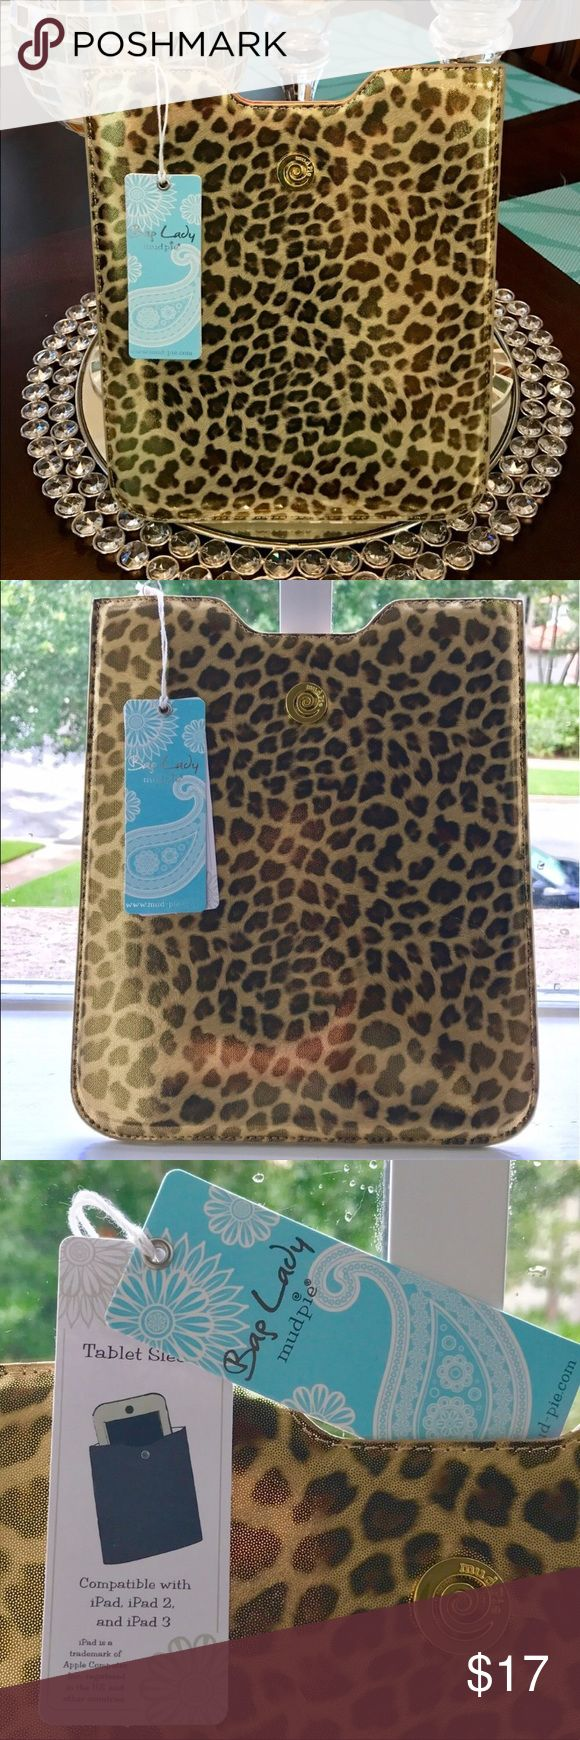 Make an offer! Shimmery Leopard Leather  Sleeve NWT Shimmering Leopard Print Vegan Leather iPad Case with beautiful contrasting interior and gold hardware detail. Comes in original packaging unopened! Compatible with iPad, iPad2 and iPad3! Retail $30, *Open to REASONABLE offers (reasonable is not half of asking price) please remember Posh takes 20%* Bundle and save on shipping! Mud Pie Accessories Tablet Cases